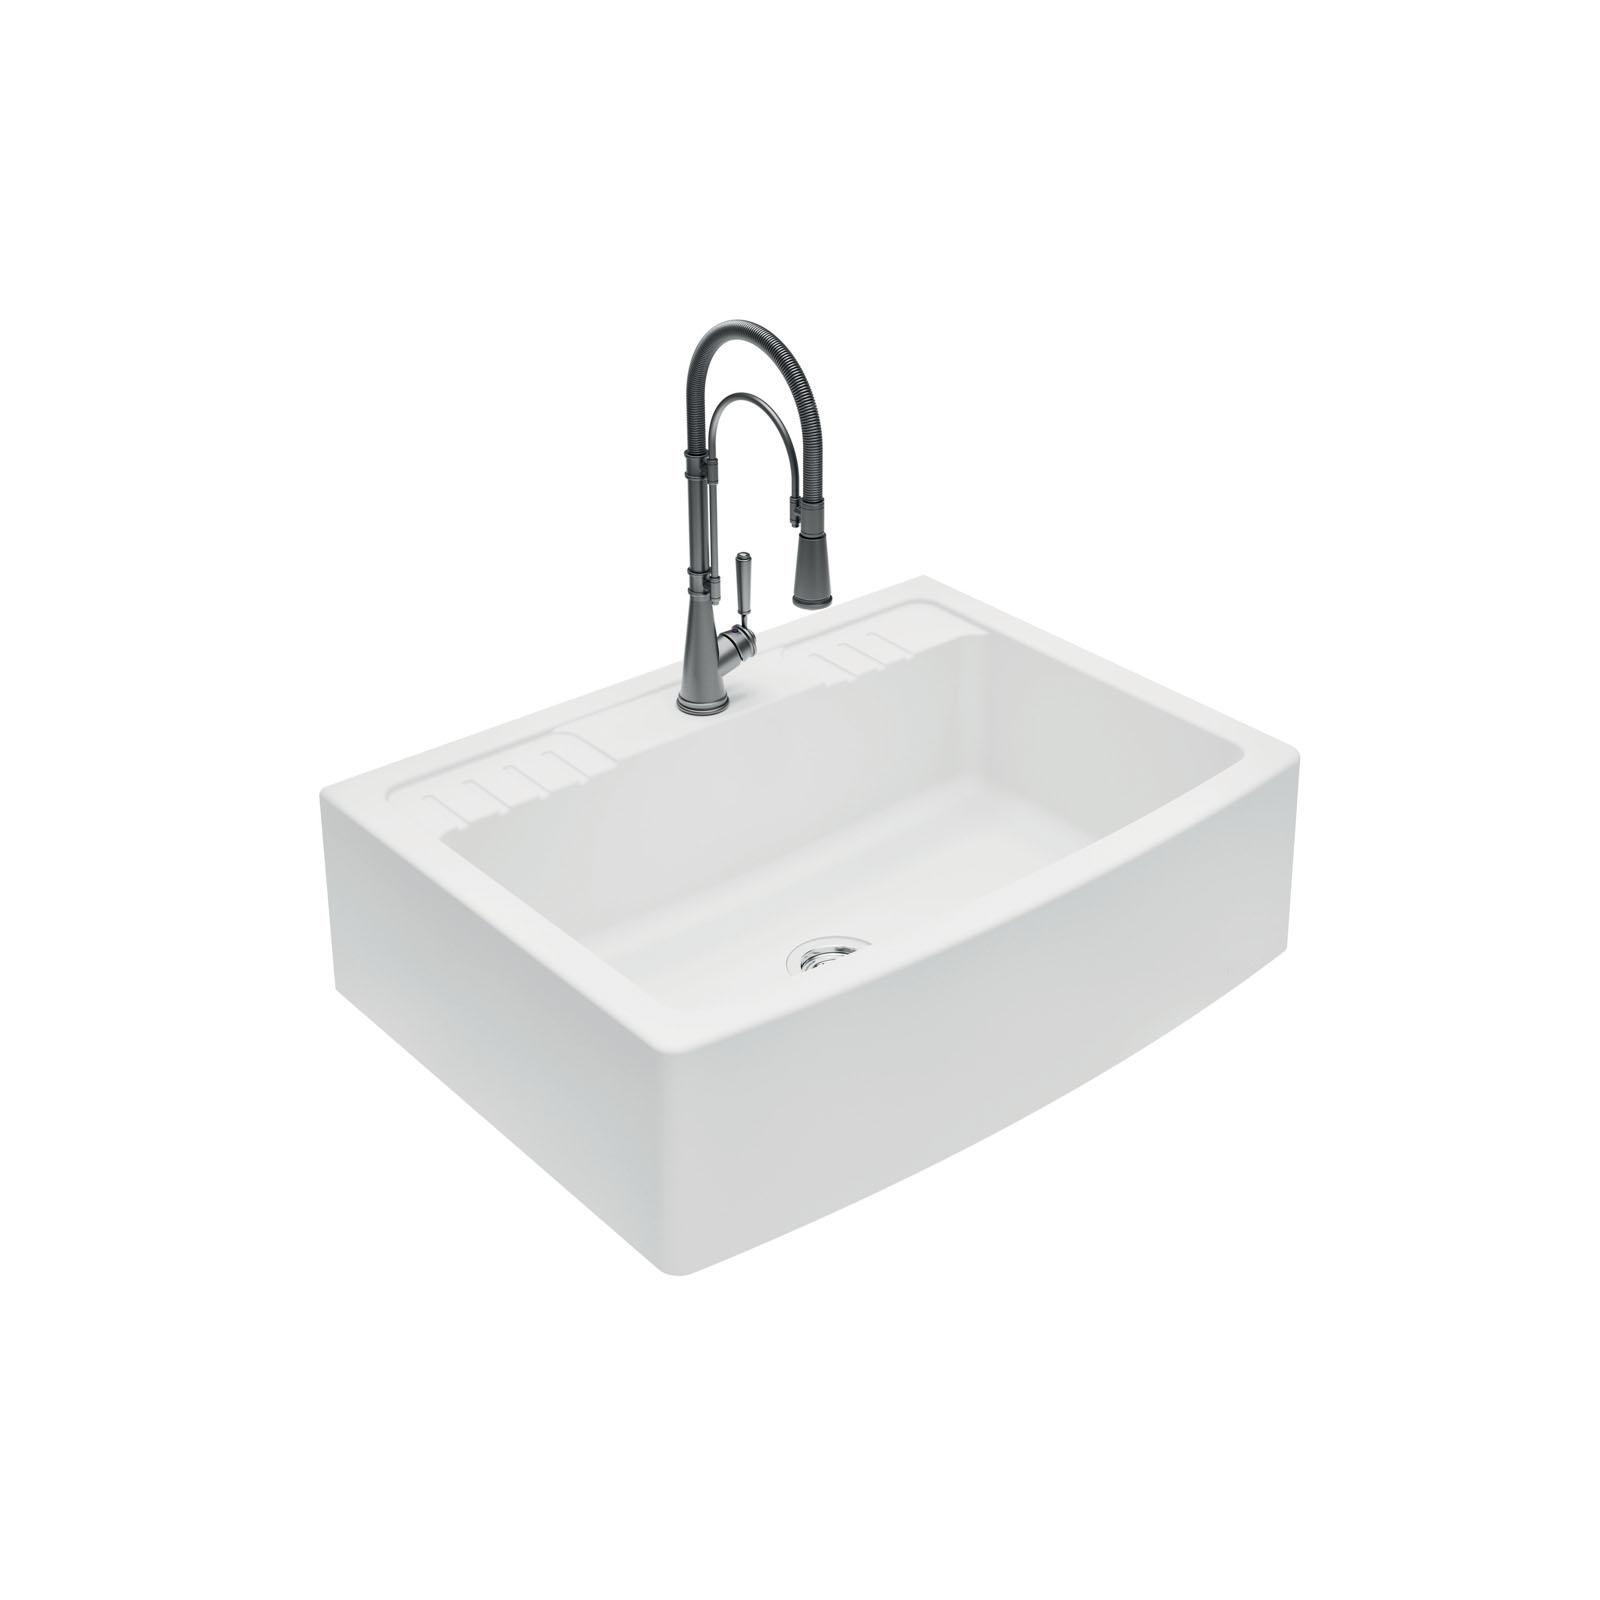 High-quality sink Clotaire IV granit white - one bowl - ambience 2